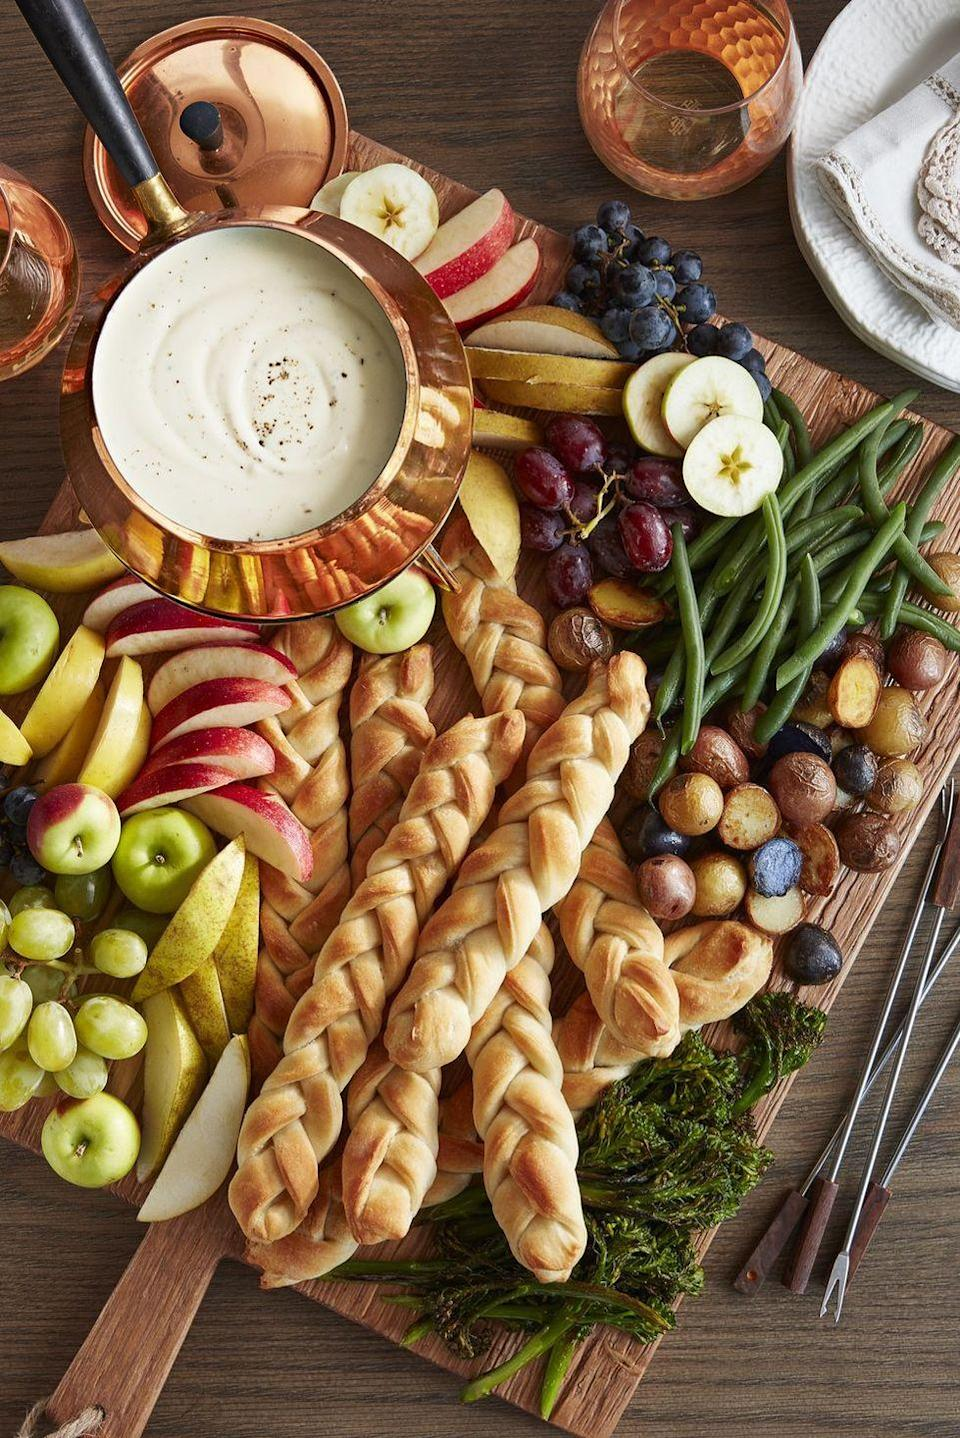 """<p>It doesn't get much easier than these braided breadsticks. You can use either store-bought or homemade pizza dough in this recipe—but your guests won't know the difference. They'll be too busy enjoying the decadent <a href=""""https://www.countryliving.com/food-drinks/a28068814/three-cheese-fondue-recipe/"""" rel=""""nofollow noopener"""" target=""""_blank"""" data-ylk=""""slk:three-cheese fondue"""" class=""""link rapid-noclick-resp"""">three-cheese fondue</a>. </p><p><strong><a href=""""https://www.countryliving.com/food-drinks/a28069249/cable-knit-breadsticks-recipe/"""" rel=""""nofollow noopener"""" target=""""_blank"""" data-ylk=""""slk:Get the recipe"""" class=""""link rapid-noclick-resp"""">Get the recipe</a>.</strong></p><p><strong><a class=""""link rapid-noclick-resp"""" href=""""https://www.amazon.com/Nordic-Ware-Natural-Aluminum-Commercial/dp/B0049C2S32?tag=syn-yahoo-20&ascsubtag=%5Bartid%7C10050.g.1078%5Bsrc%7Cyahoo-us"""" rel=""""nofollow noopener"""" target=""""_blank"""" data-ylk=""""slk:SHOP BAKING SHEETS"""">SHOP BAKING SHEETS</a><br></strong></p>"""